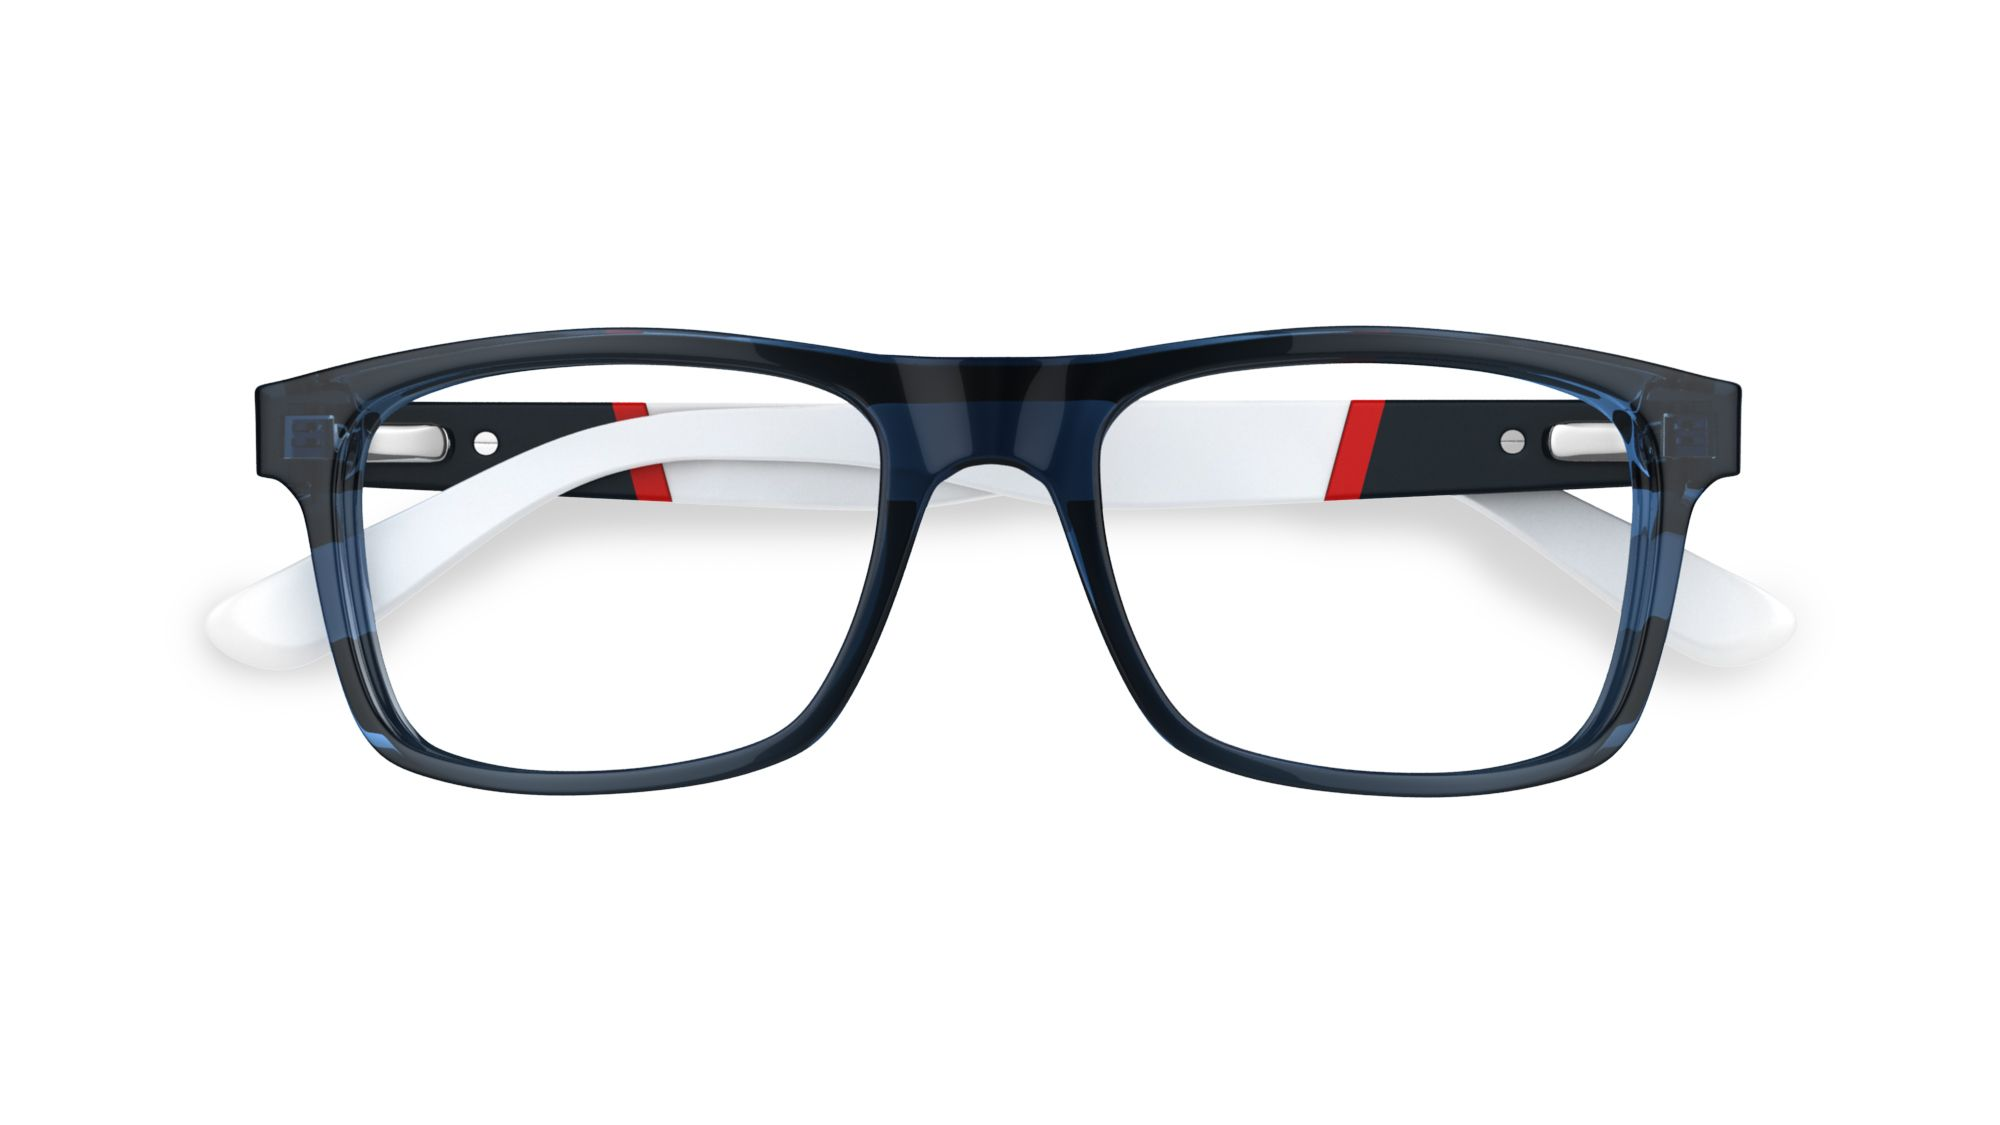 393ae5eead2 Tommy Hilfiger glasses - TH 73